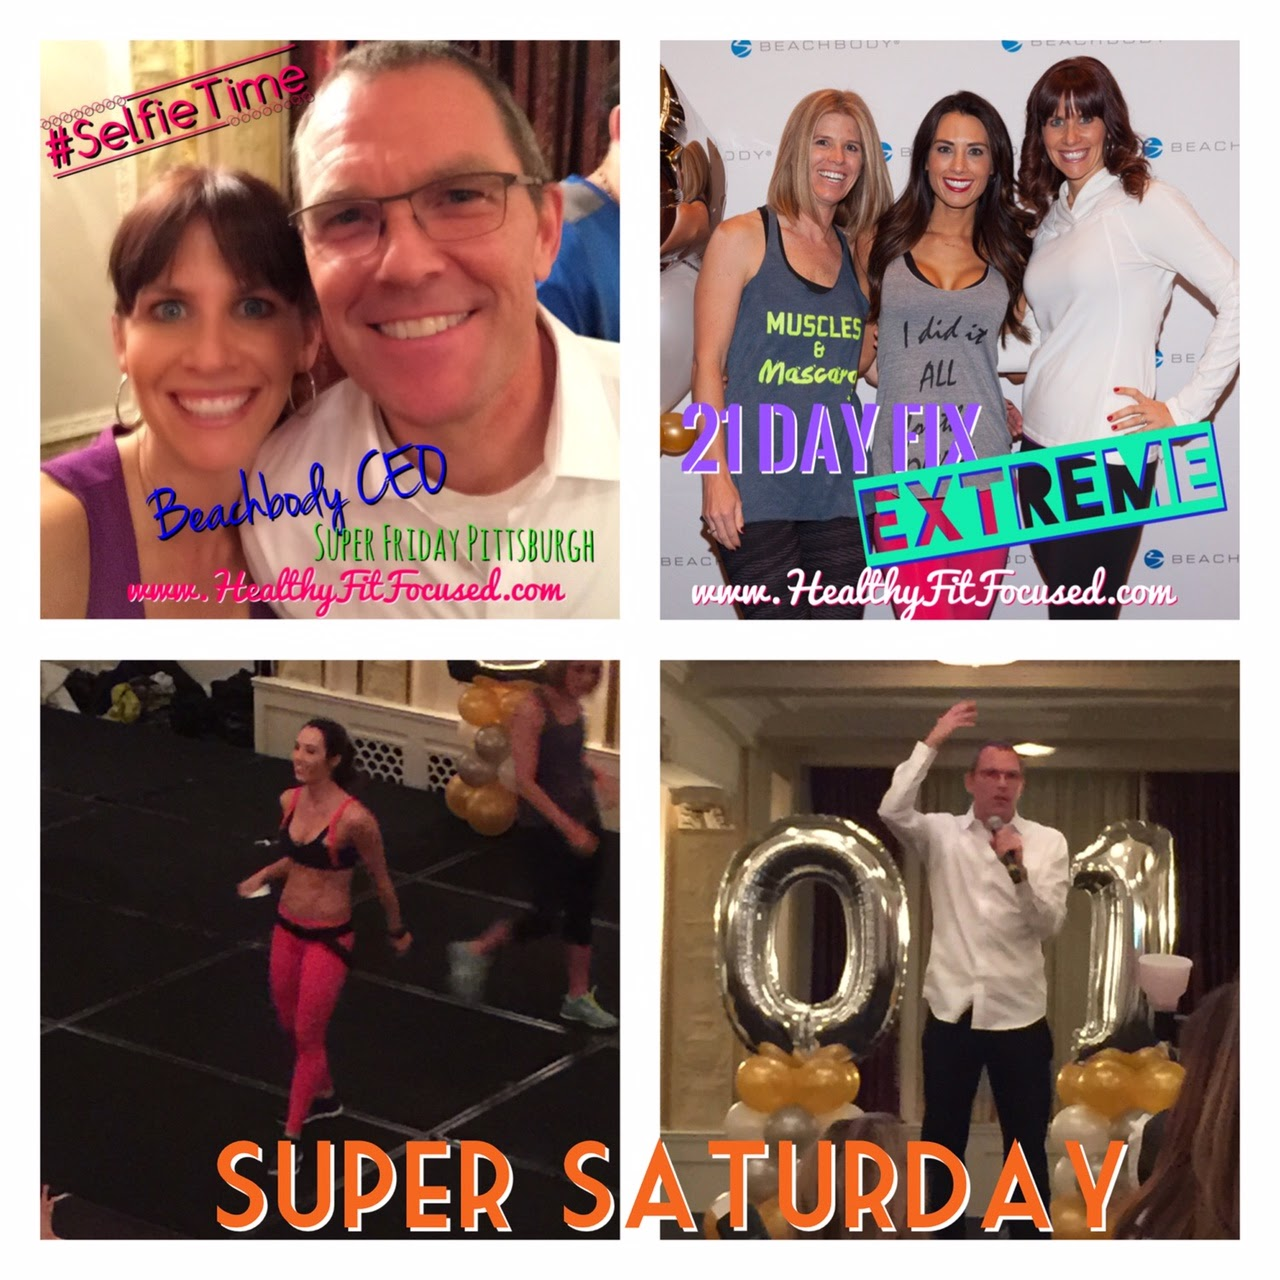 Super Staurday, Beachbody.  Celebration with Carl Daikeler, Autumn Calabrese and the Dream Team, www.HealthyFitFocused.com